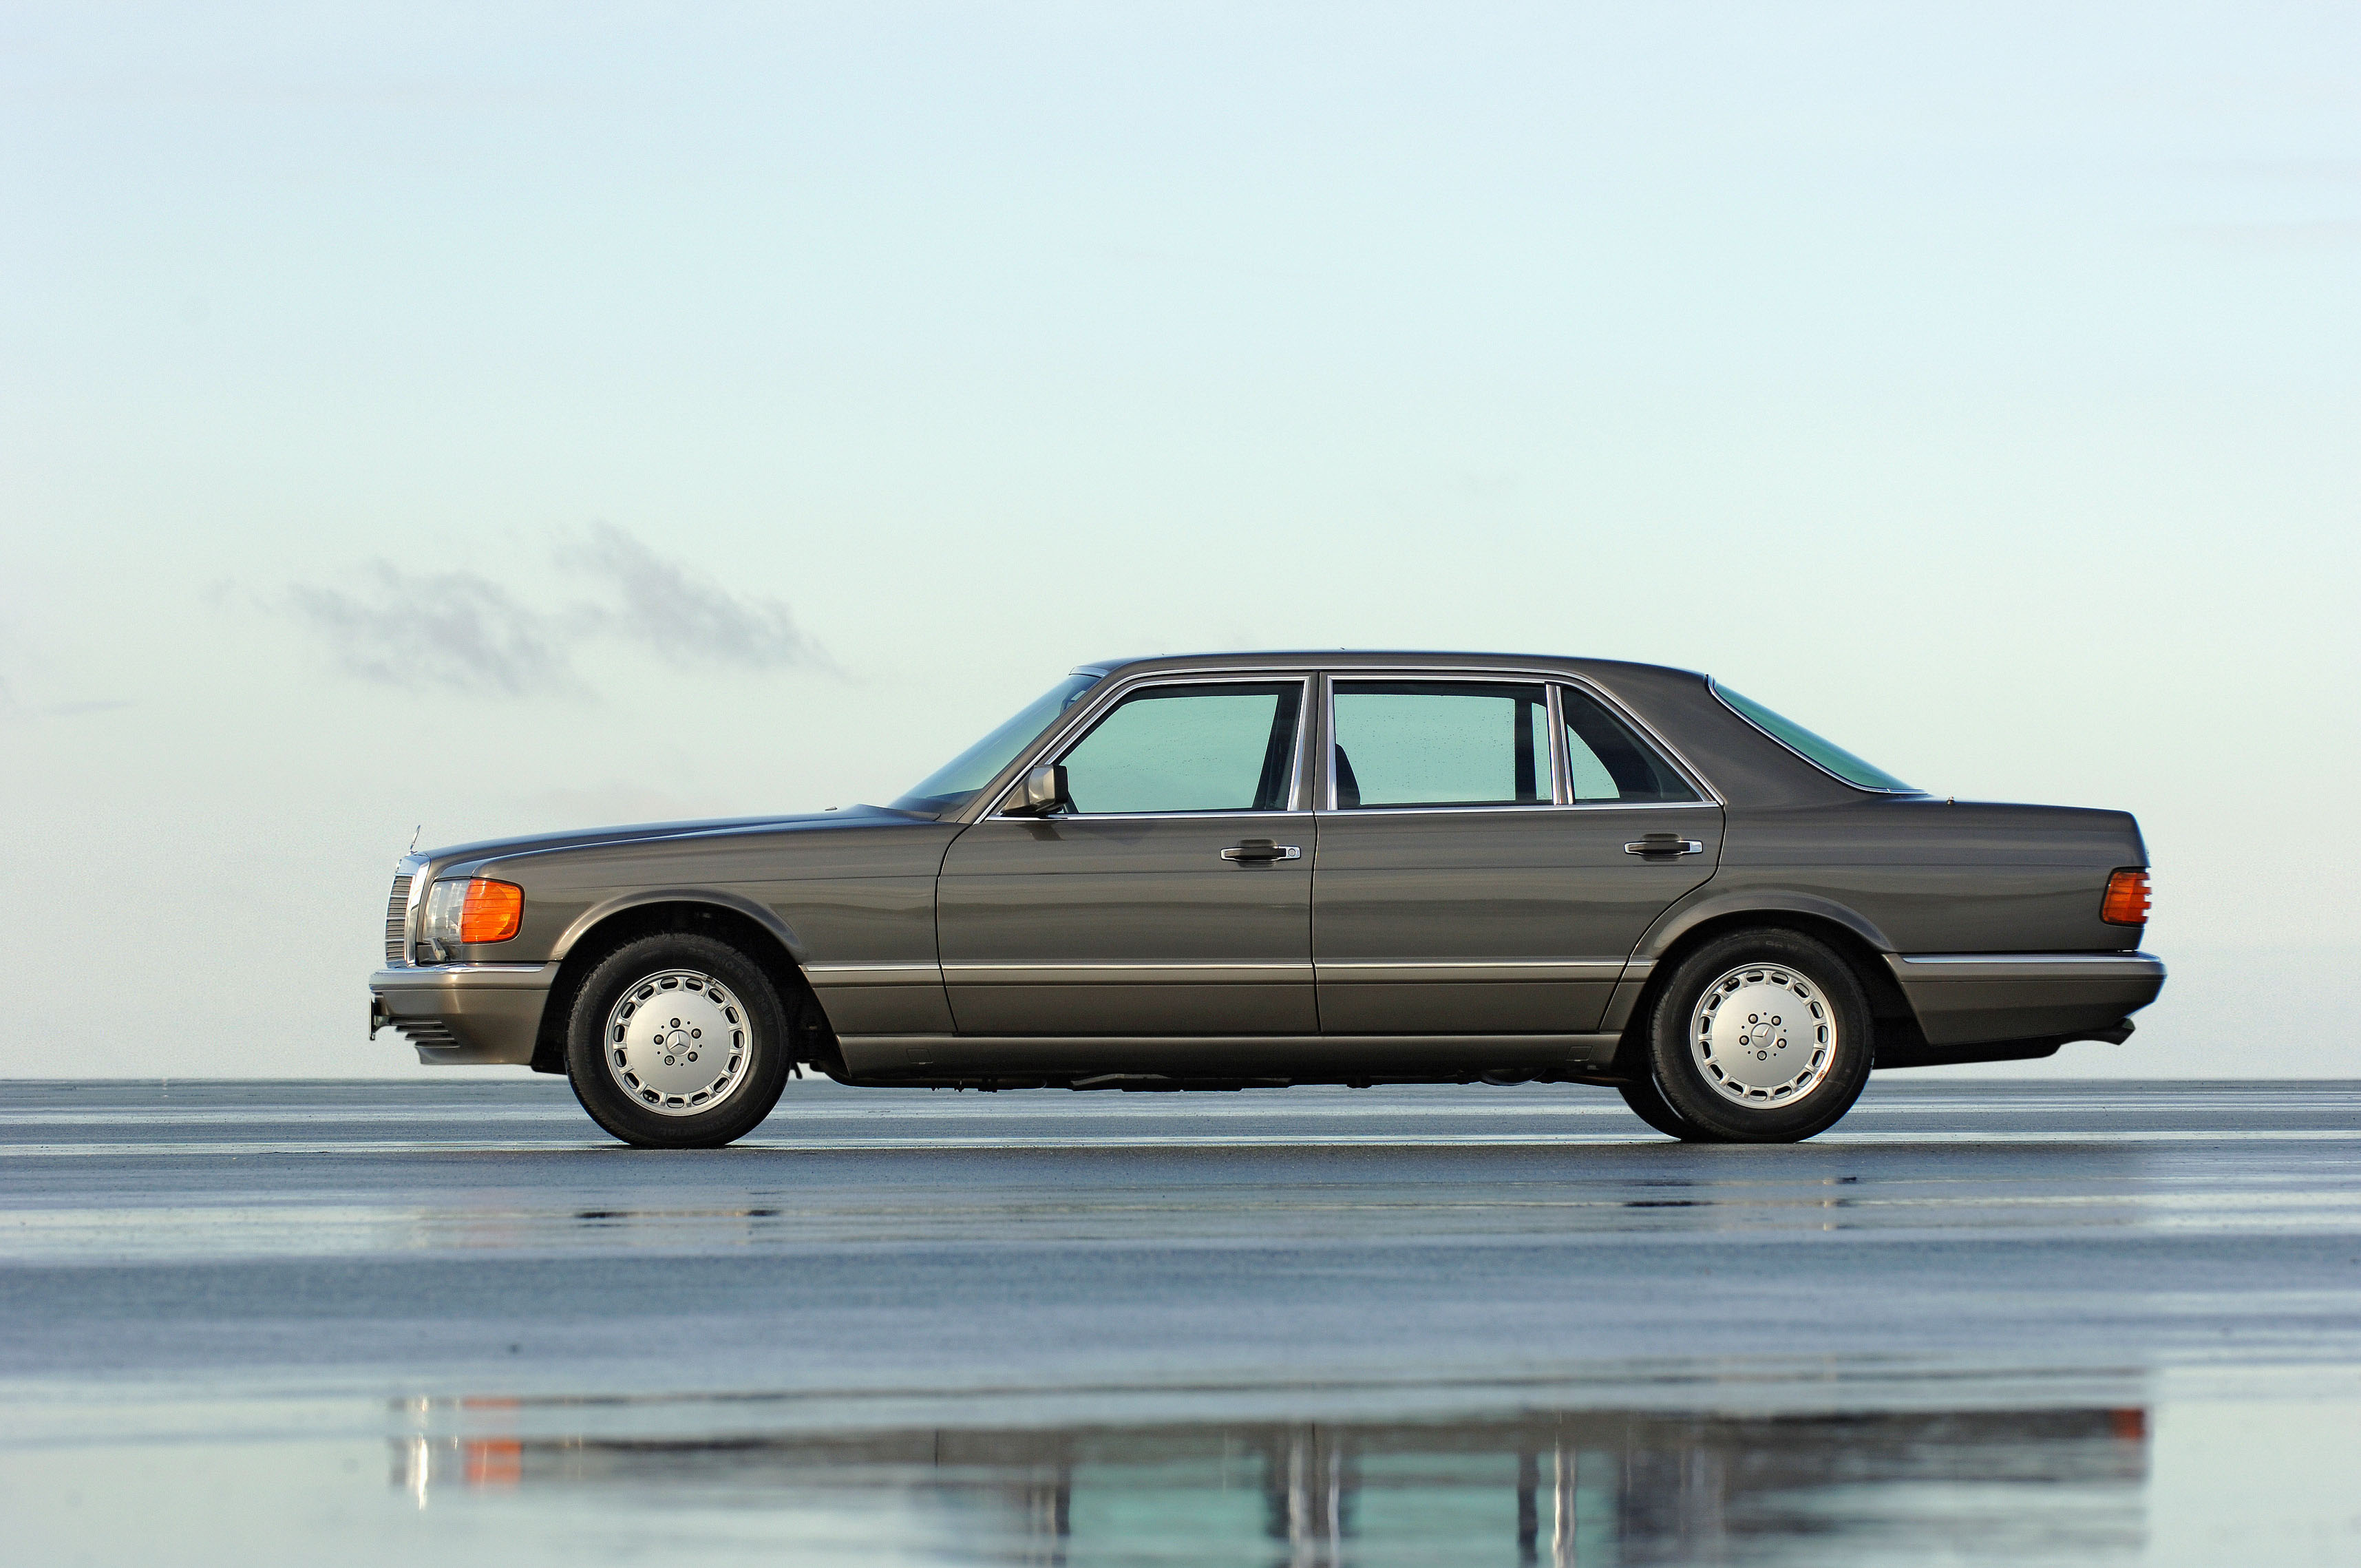 The 1981 Mercedes-Benz S-Class W126 series featured a driver airbag and belt tensioner for the front passenger.